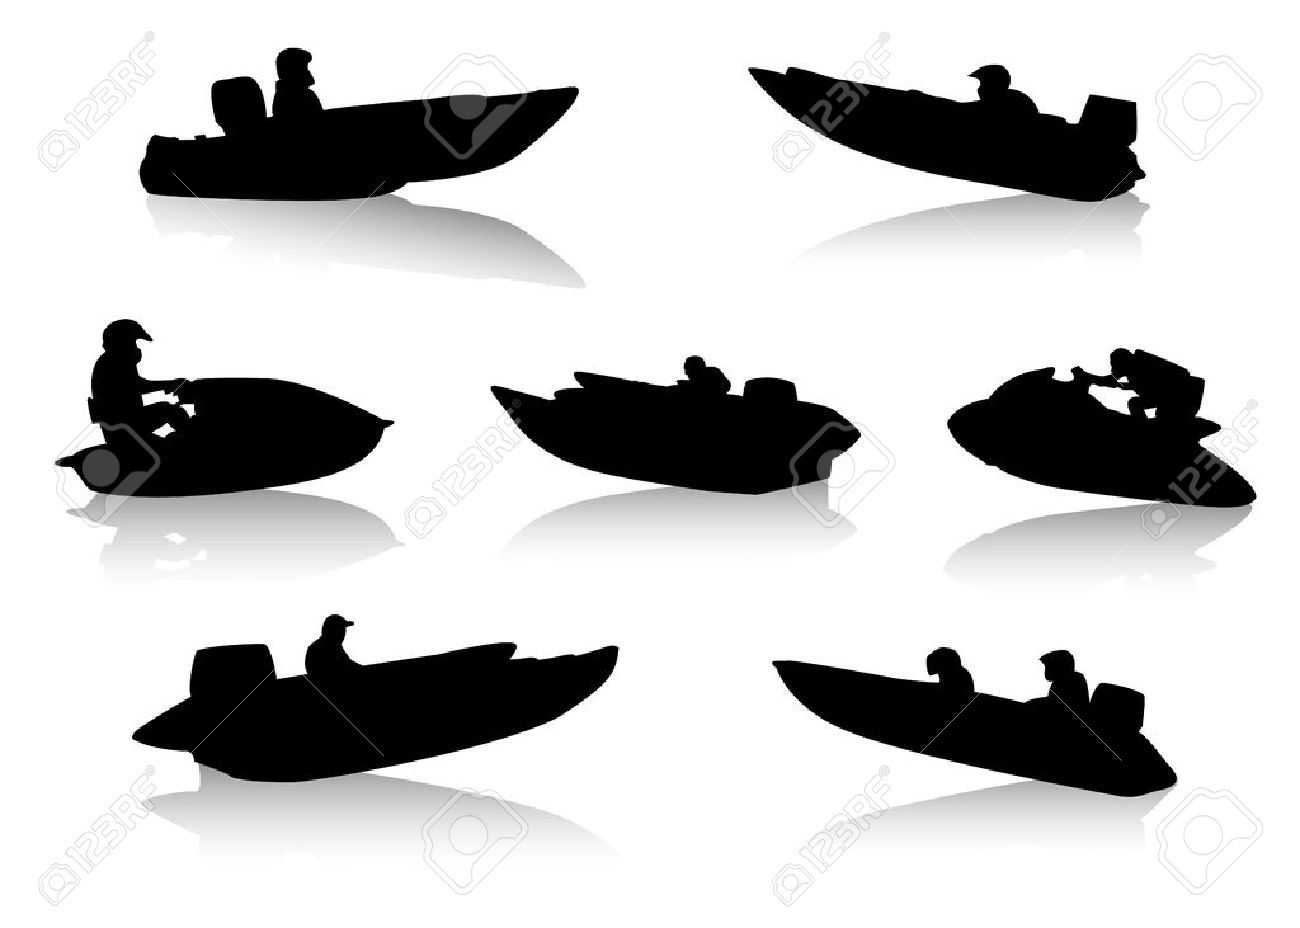 1300x928 1372898 Silhouettes Of People On Motor Boats Stock Vector Boat